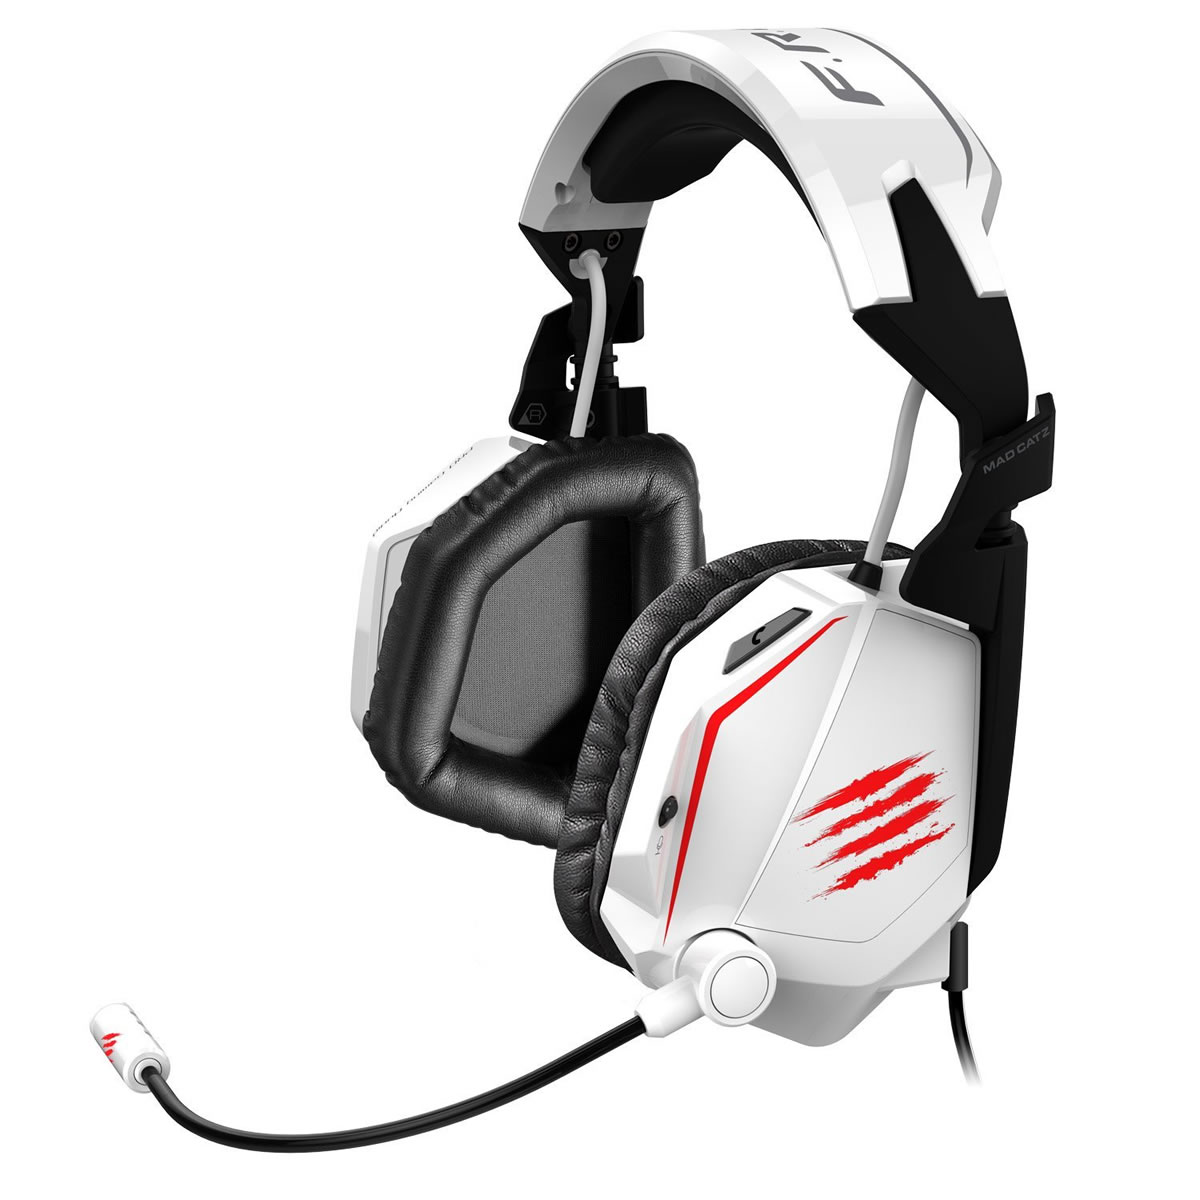 MAD CATZ FREQ TE Tournament Edition STEREO GAMING HEADSET - GLOSS WHITE (PC, MAC, MOBILE)